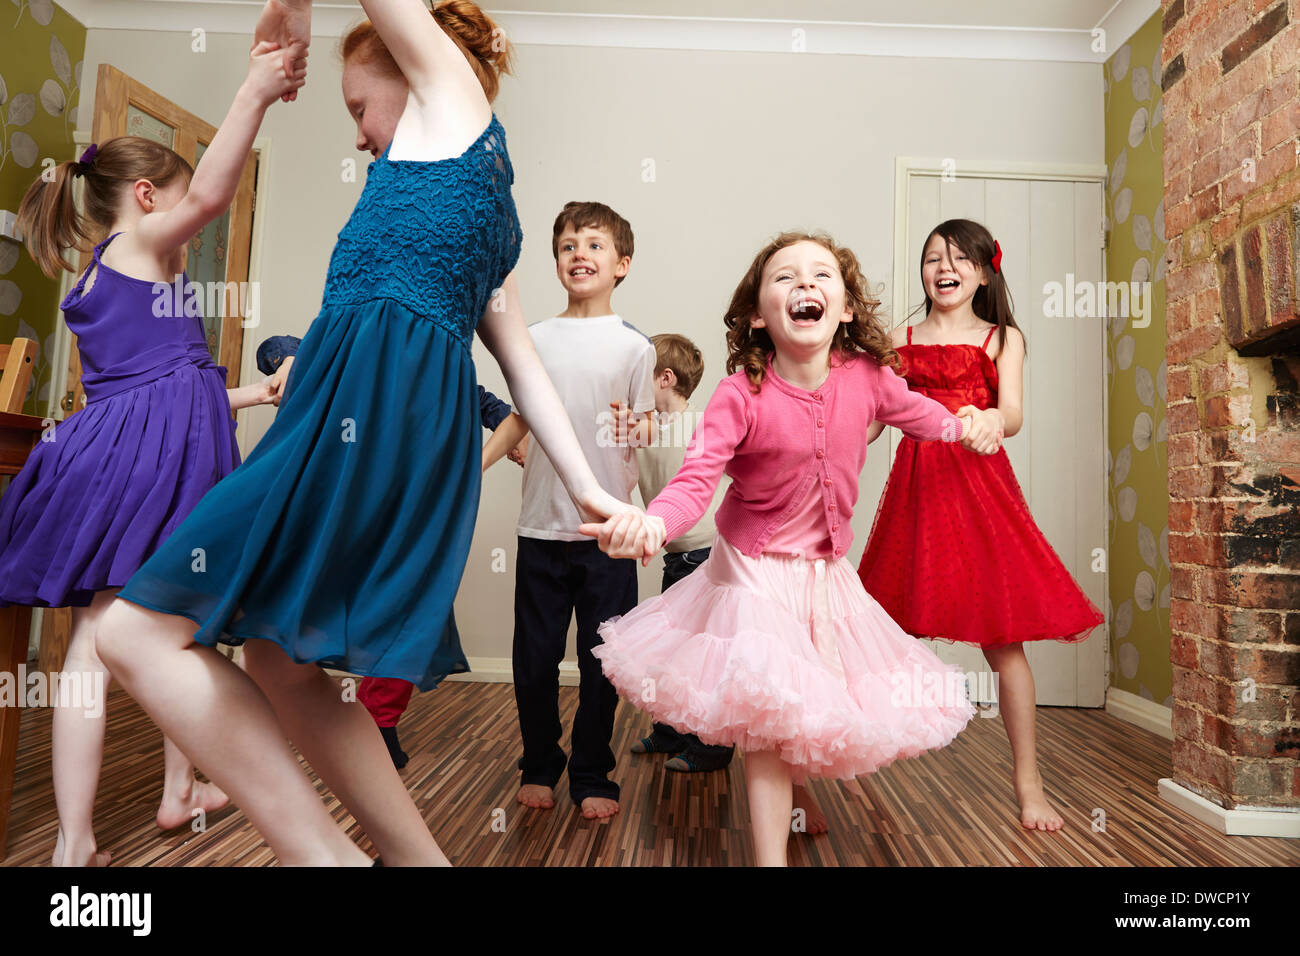 Children dancing at birthday party - Stock Image